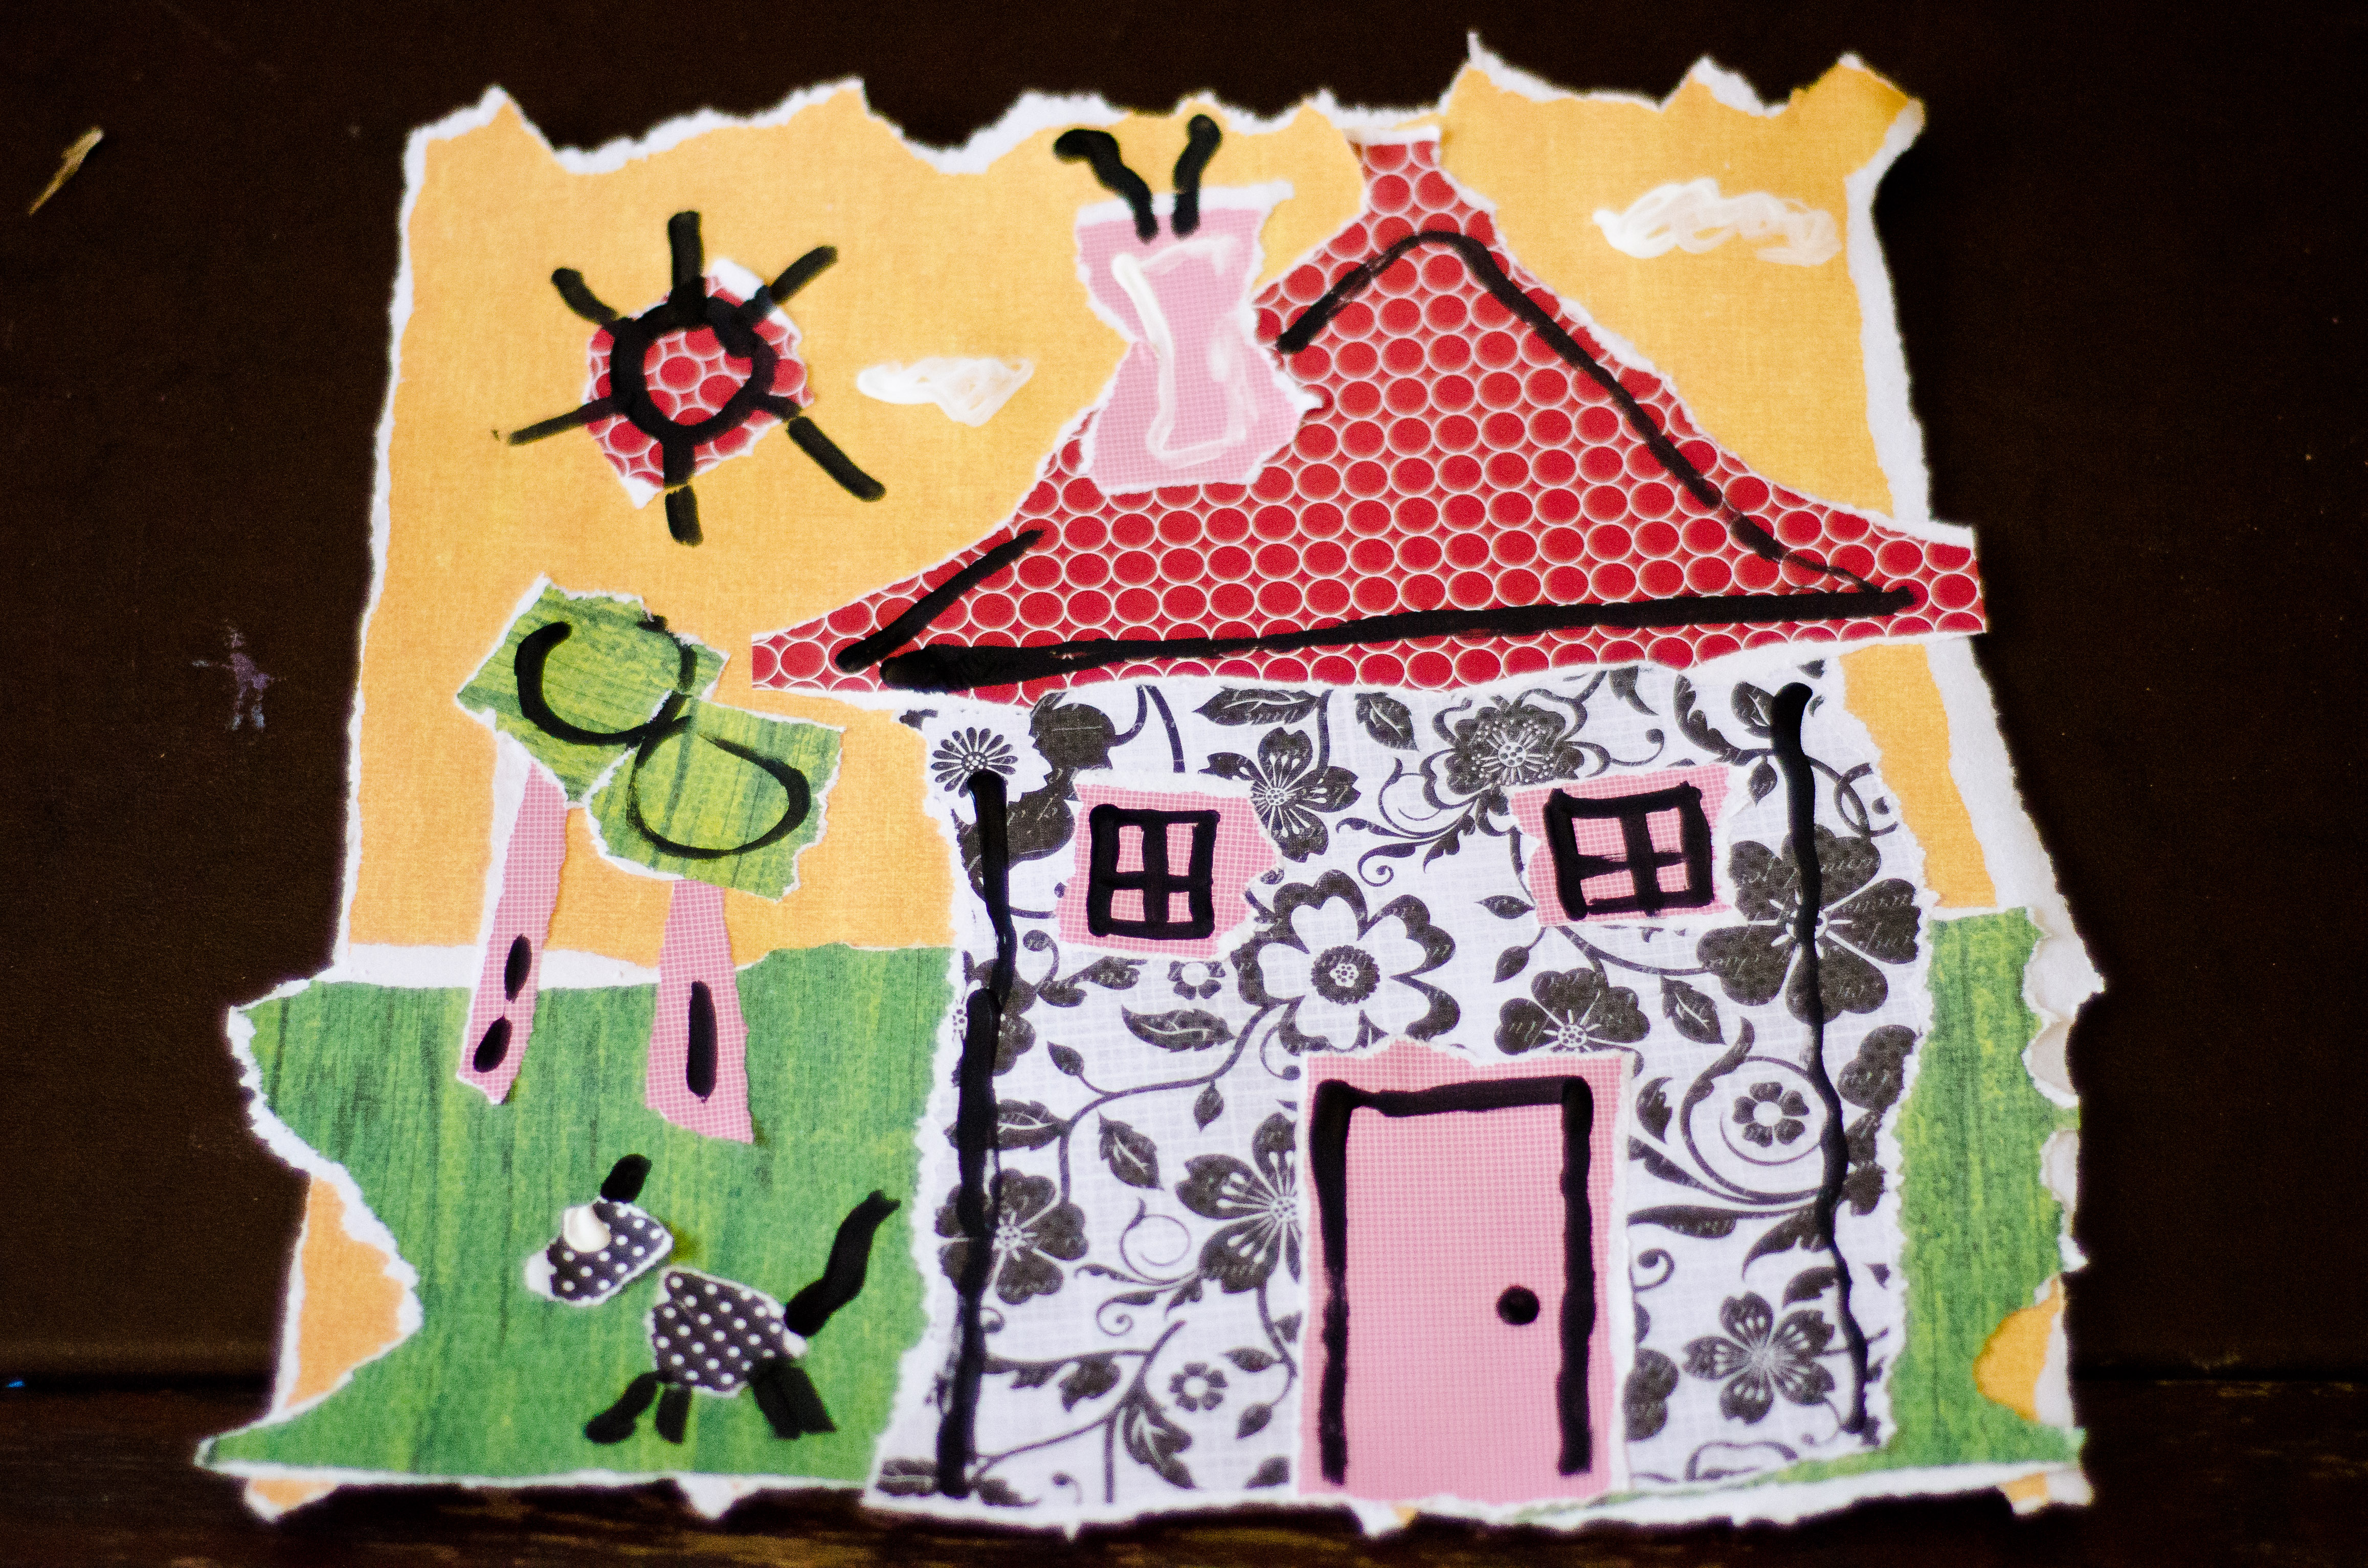 Scrapbook paper collage - In This Lesson Students Will Use Scrapbook Paper To Work With Color And Pattern In Order To Create A Cohesive Composition For A Torn Paper Collage